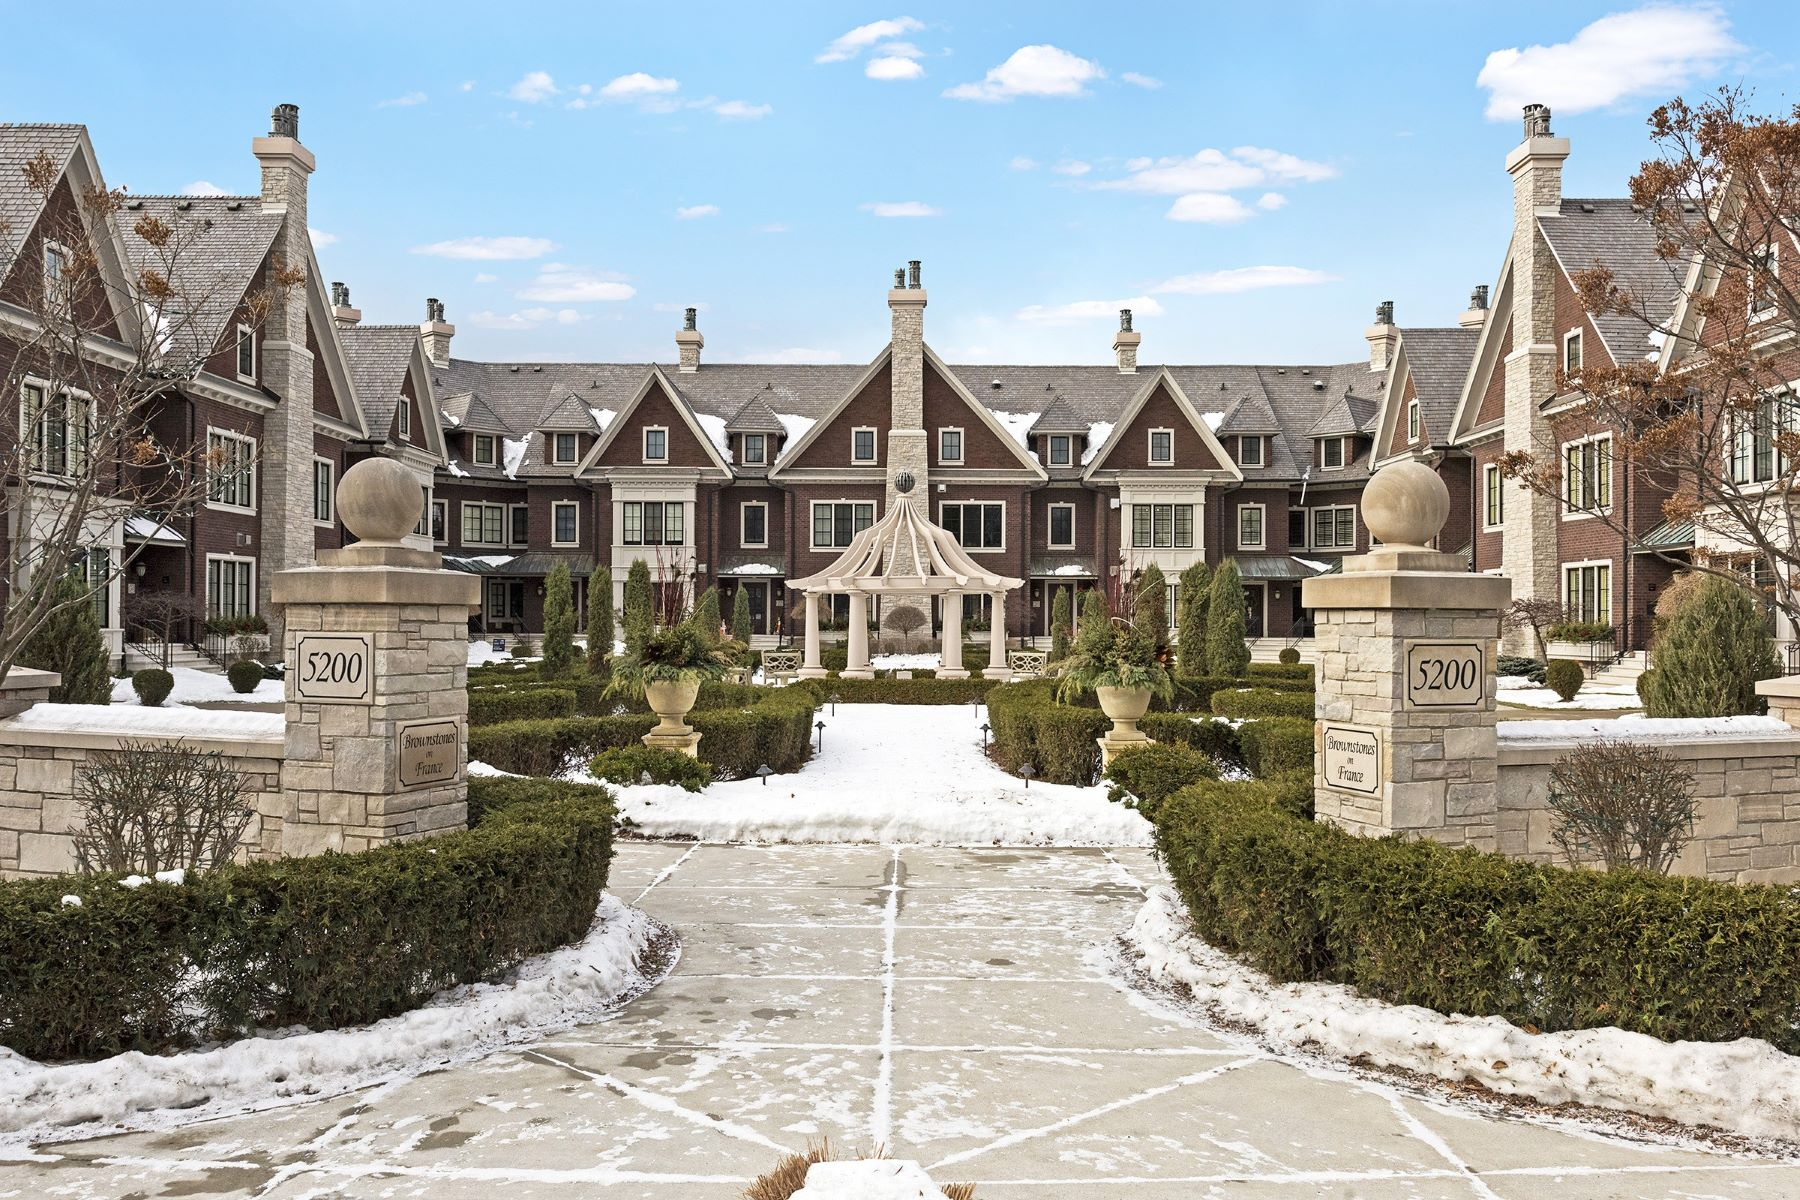 Townhouse for Sale at 5200 France Ave S #30 Edina, Minnesota, 55410 United States